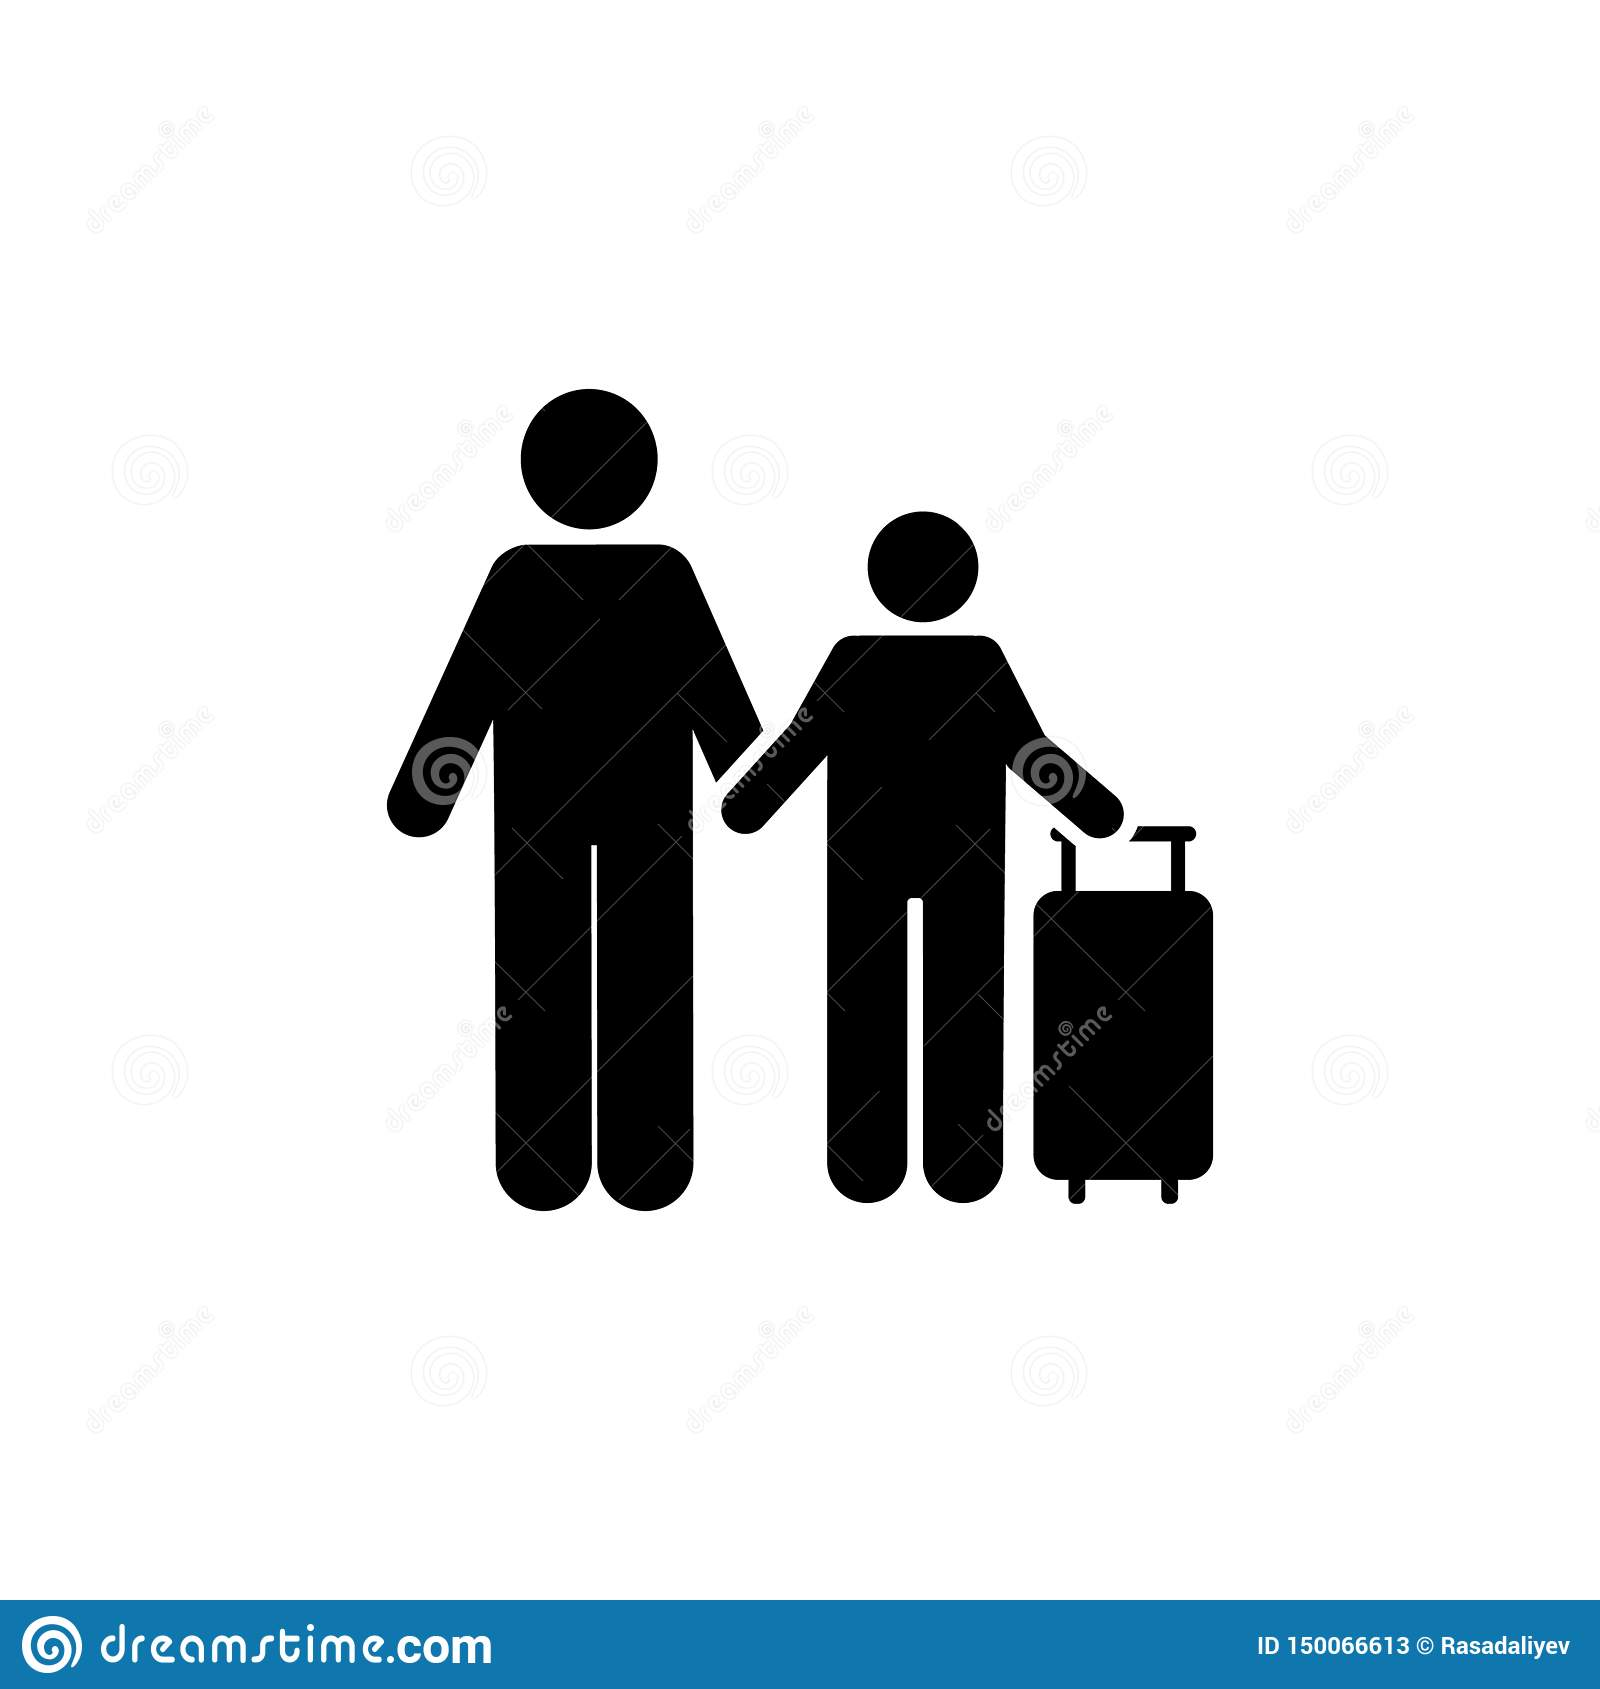 Son, man, travel, hotel icon. Element of hotel pictogram icon. Premium quality graphic design icon. Signs and symbols collection